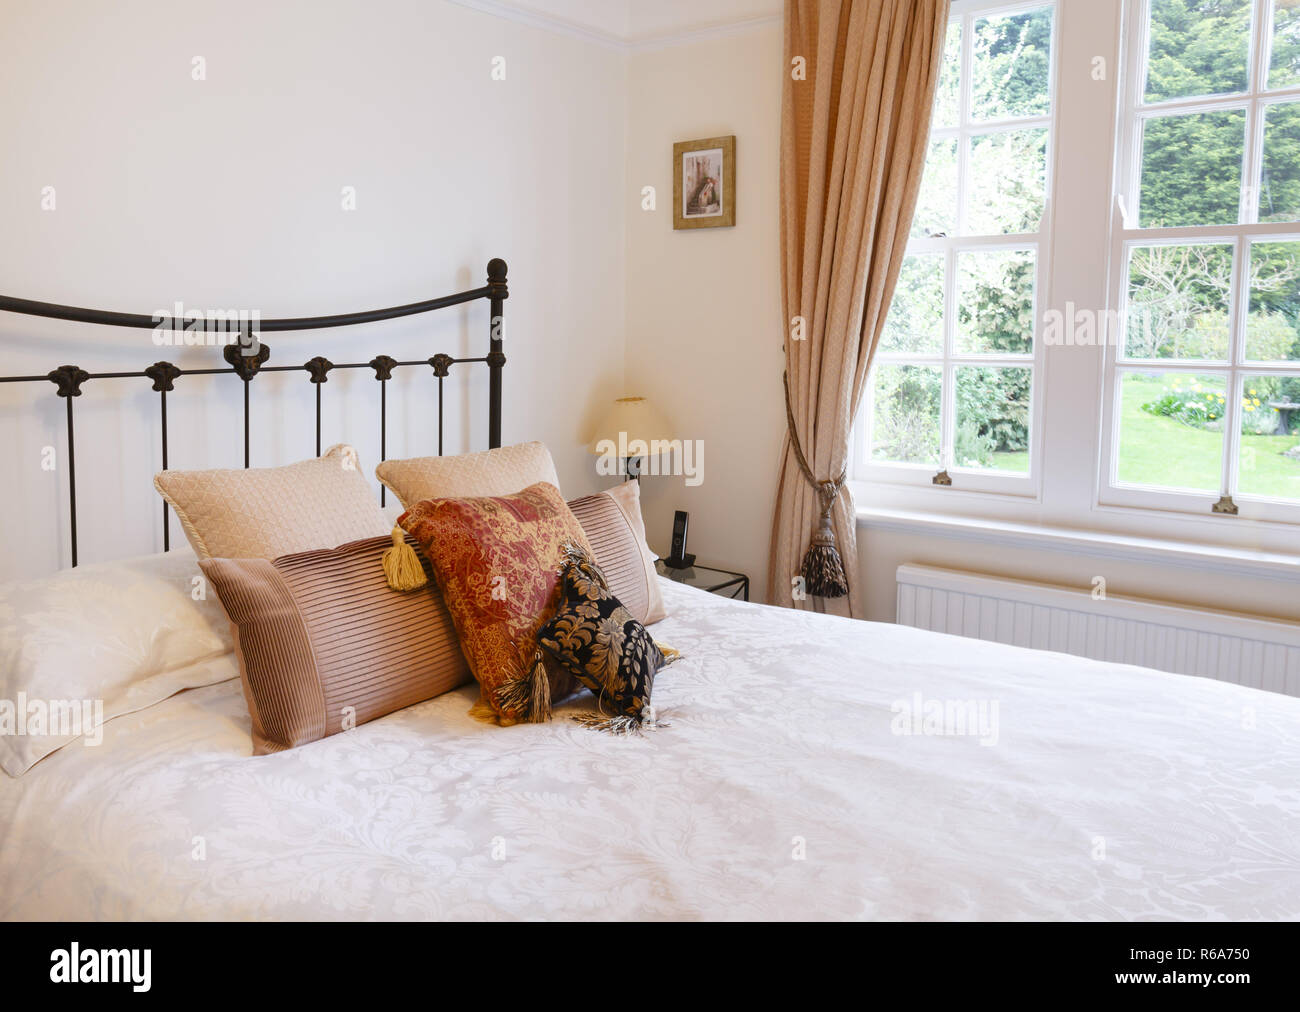 Bedroom interior in a traditional style English house with luxury soft furnishing Stock Photo